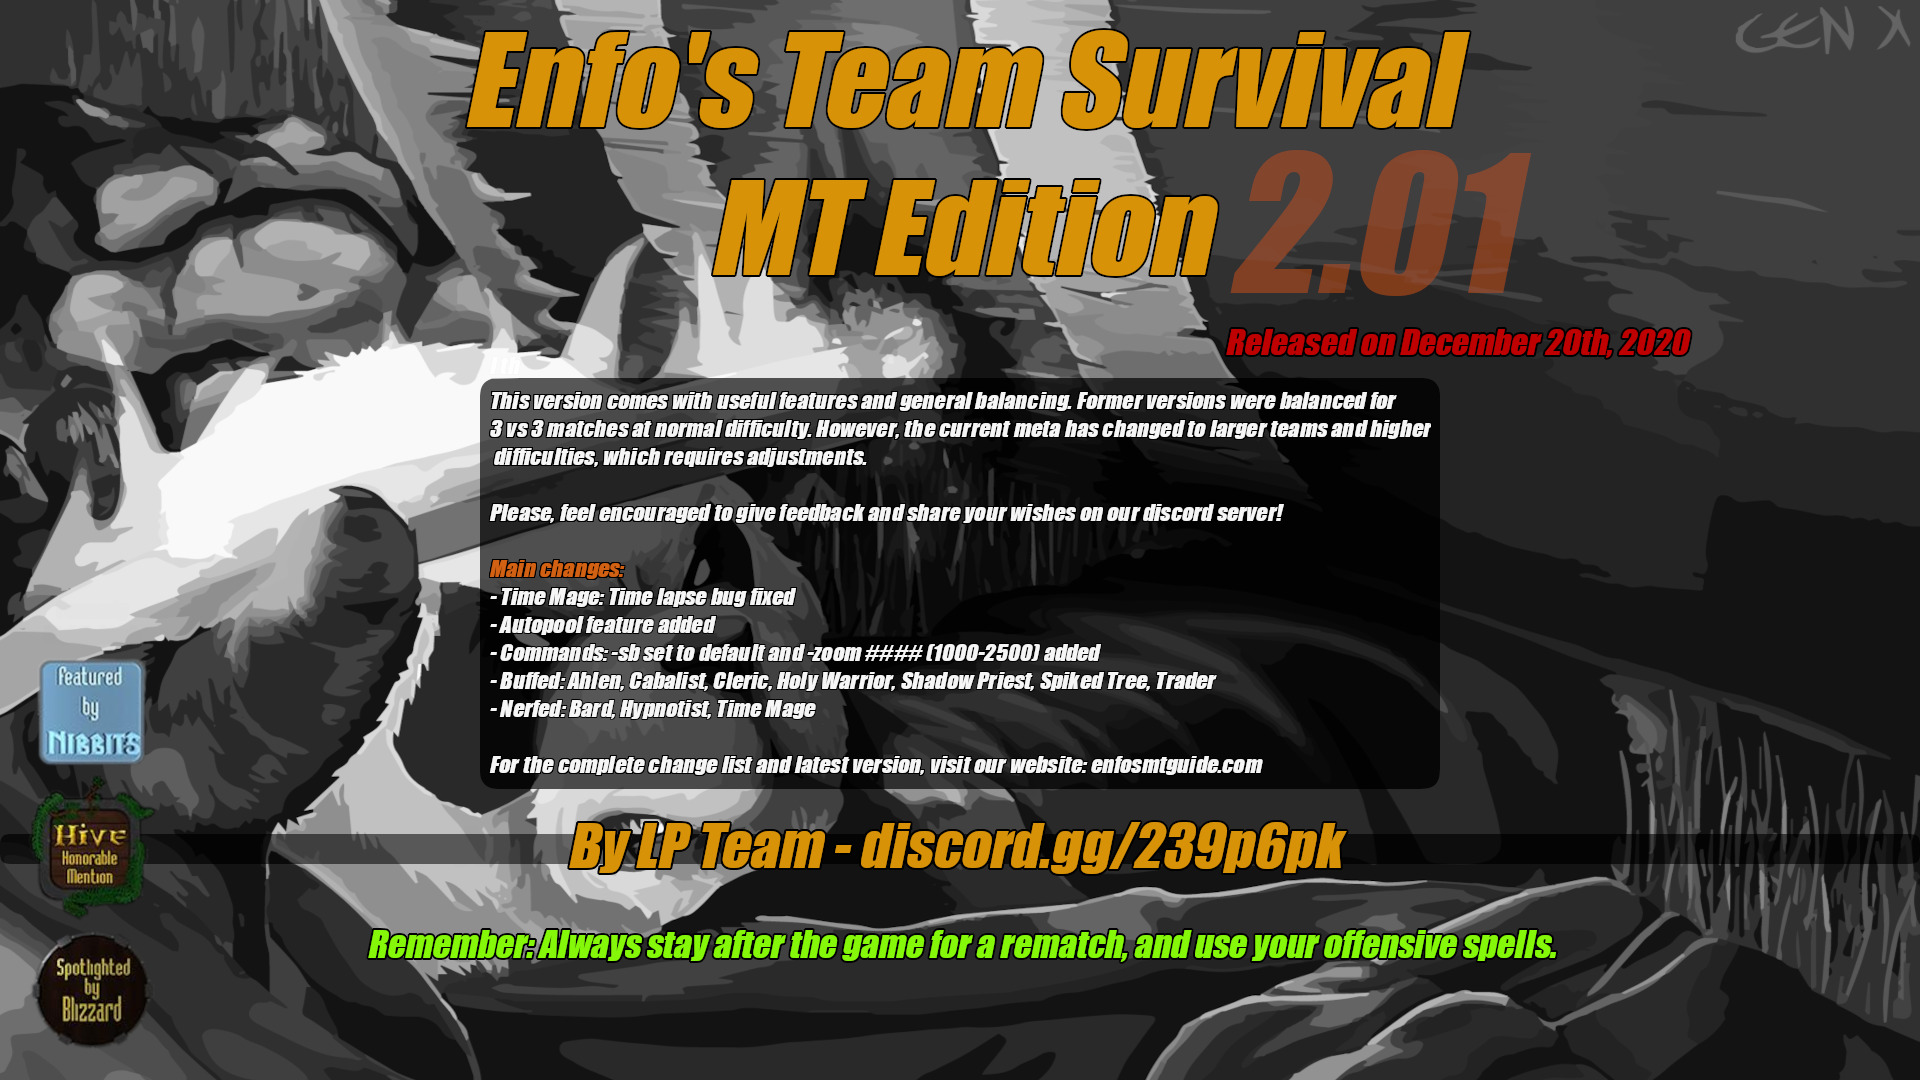 Enfo's TS:MT Edition 2.01 - Warcraft 3: Custom Map avatar